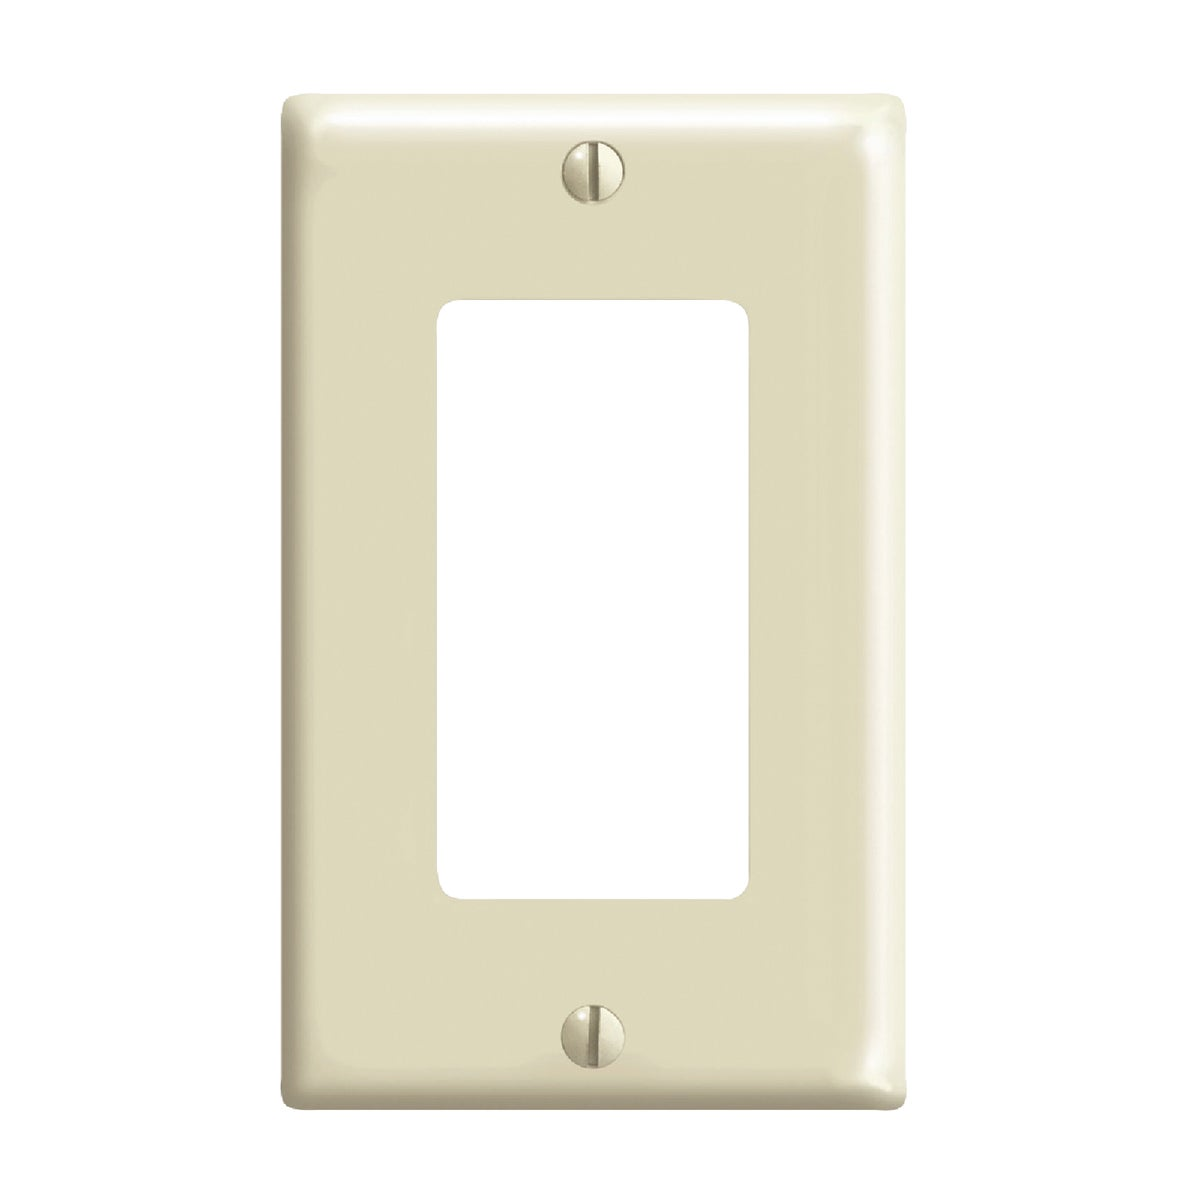 IV WALL PLATE - 80401NI by Leviton Mfg Co